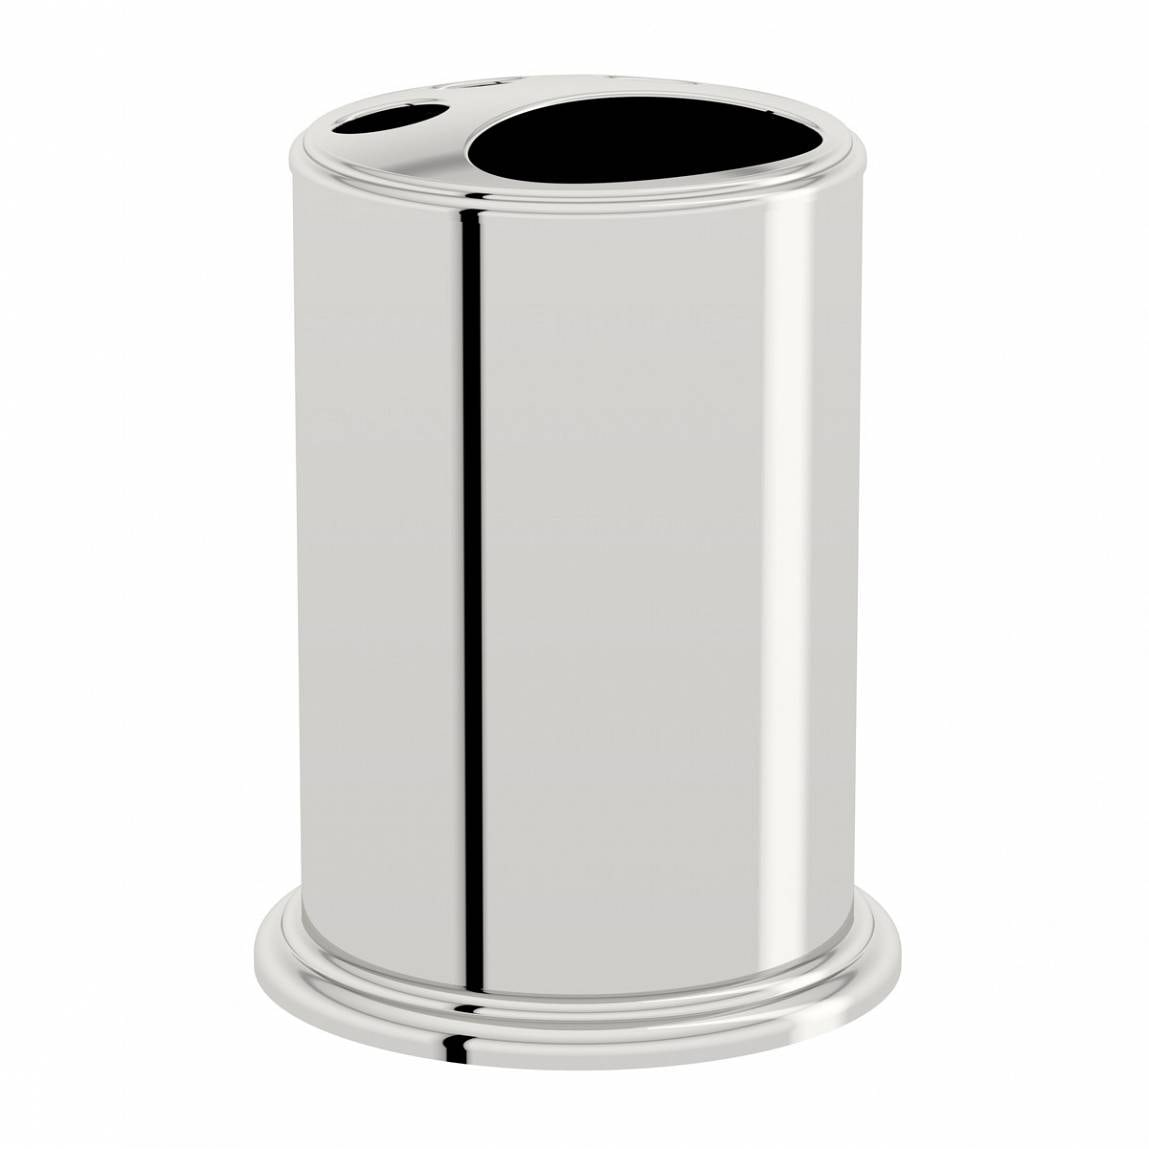 Options Freestanding Stainless Steel Toothbrush Holder